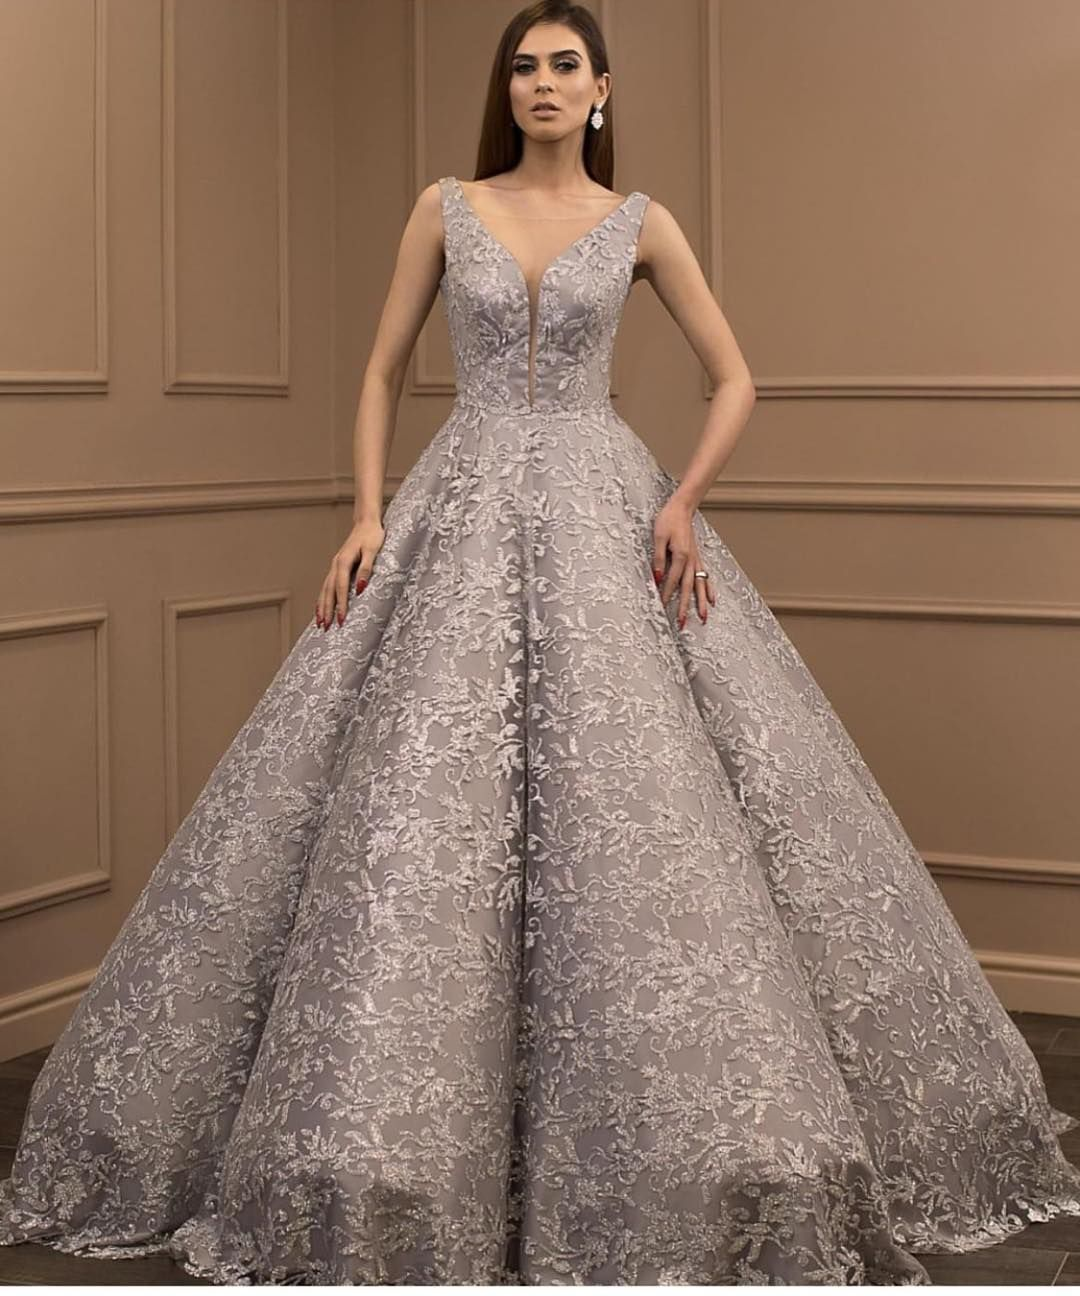 Non Traditional Wedding Dresses With Color: Platinum Silver Colored Wedding Dresses Are Still Popular